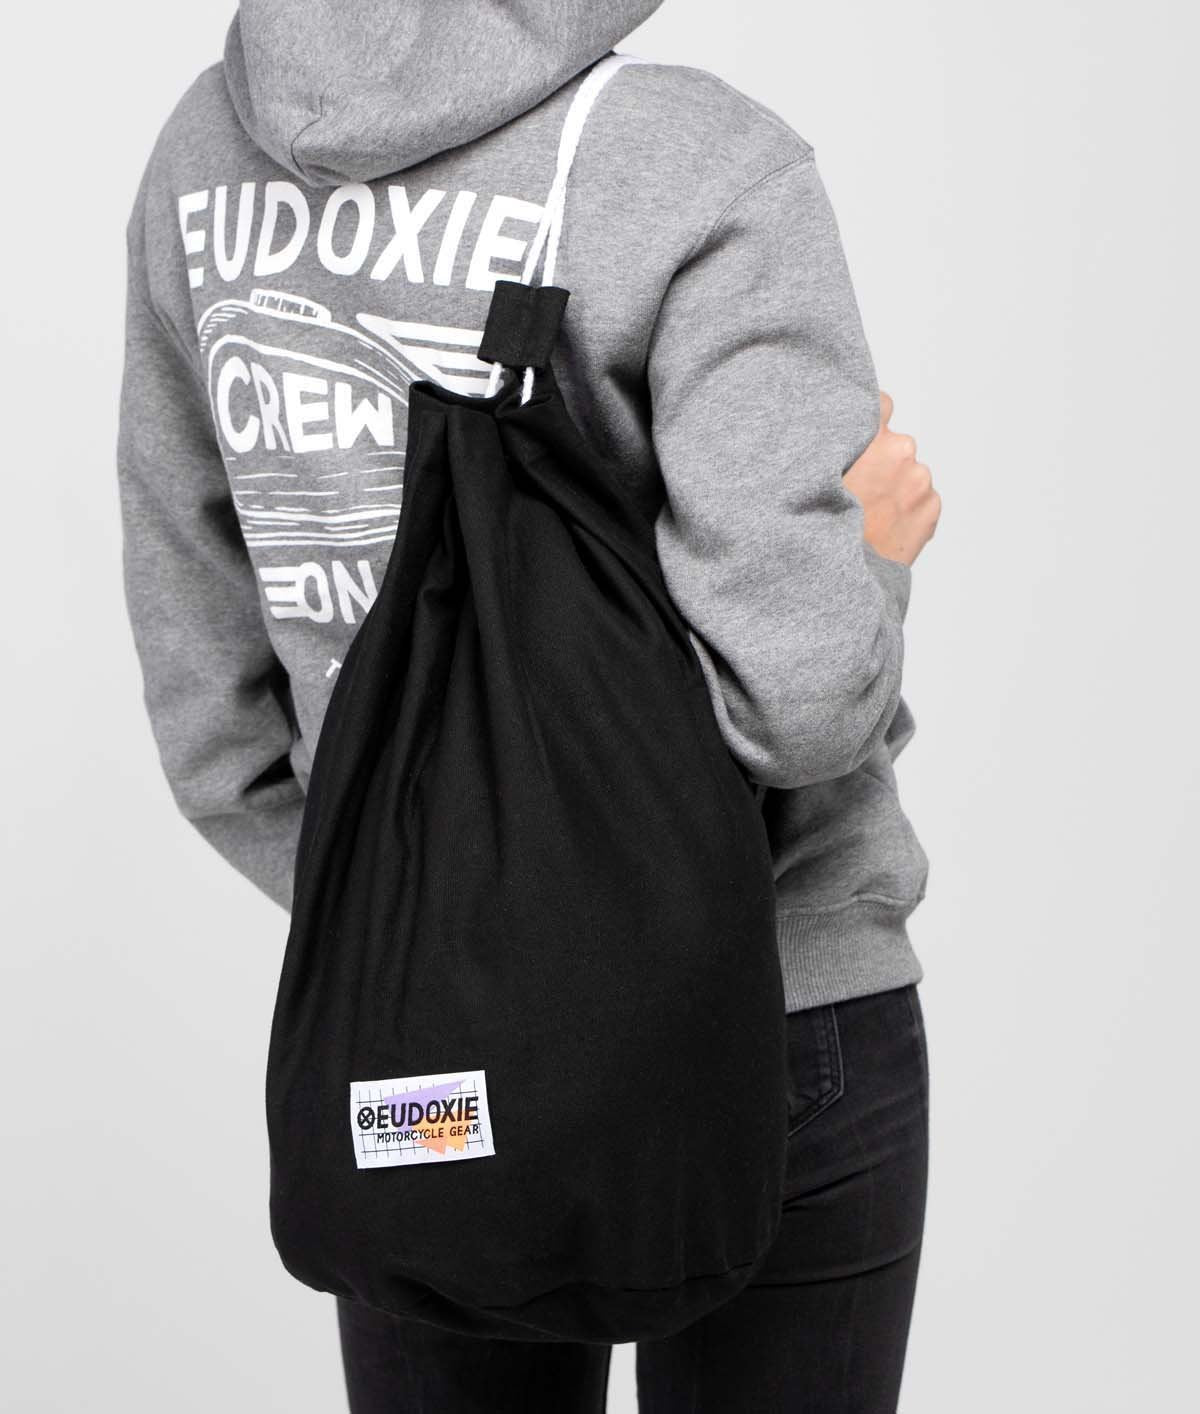 Eudoxie - Eudoxie Kit Bag - Luggage - Salt Flats Clothing